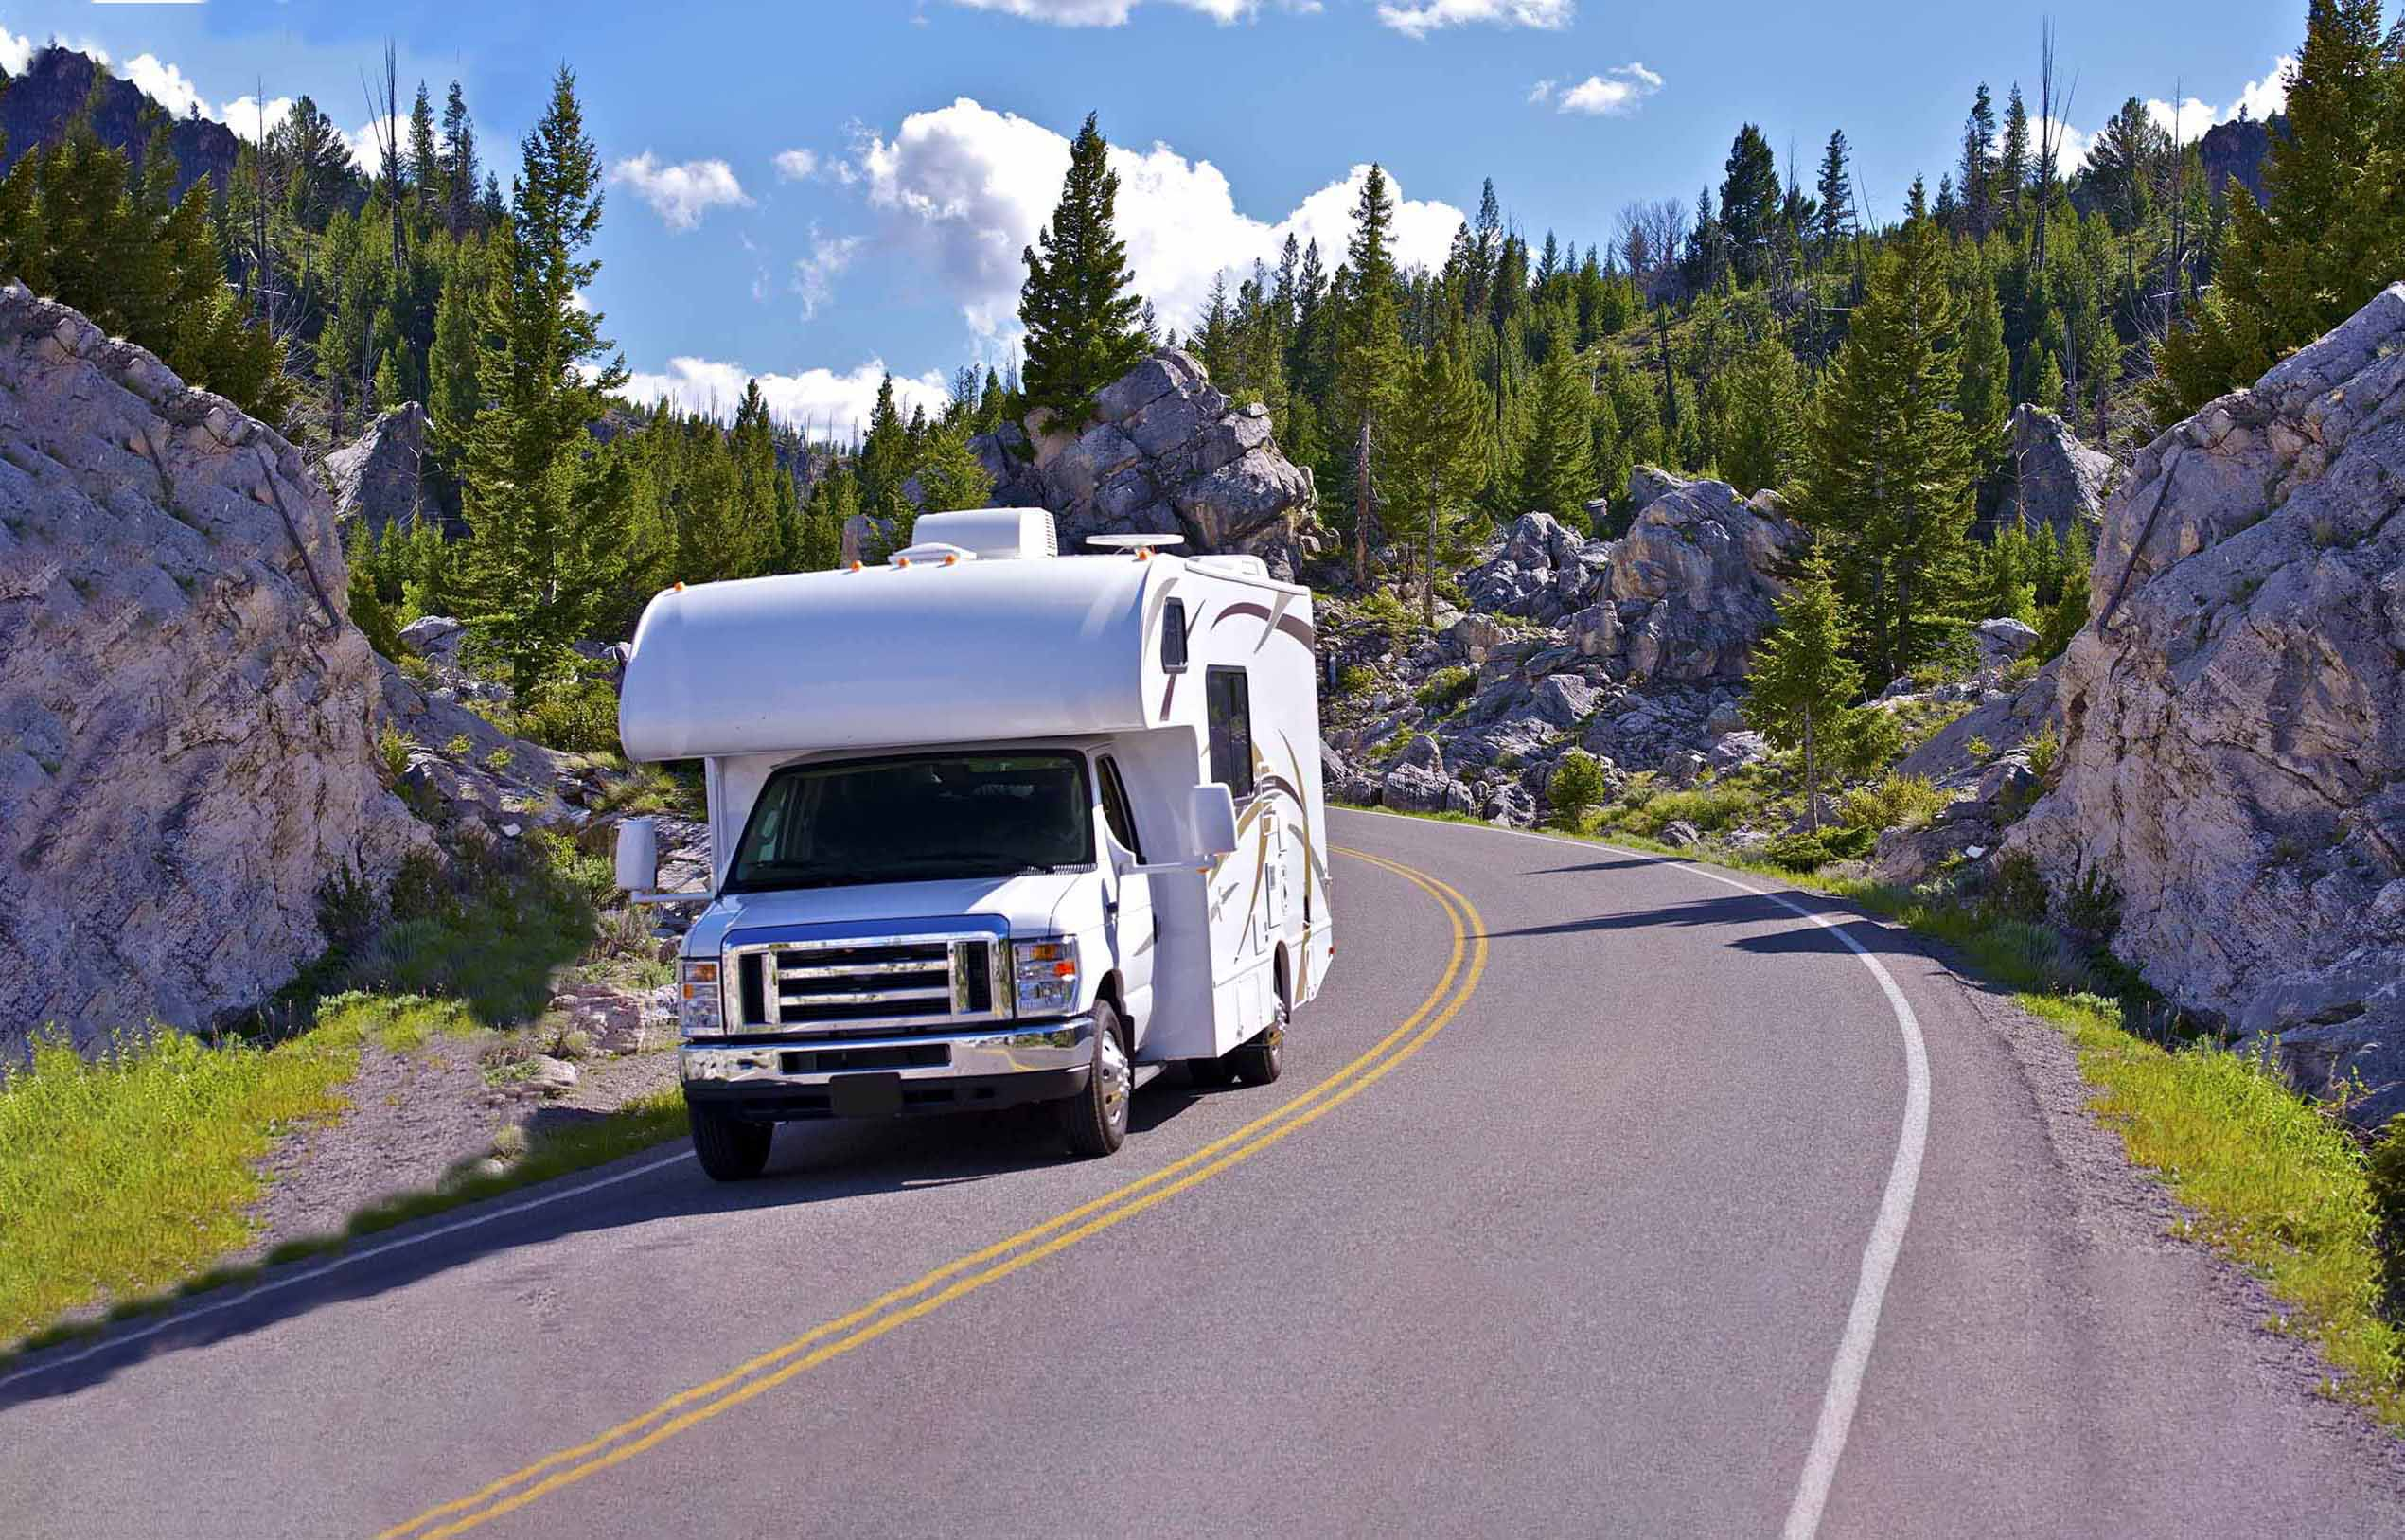 RV taking the curve of a mountain road.